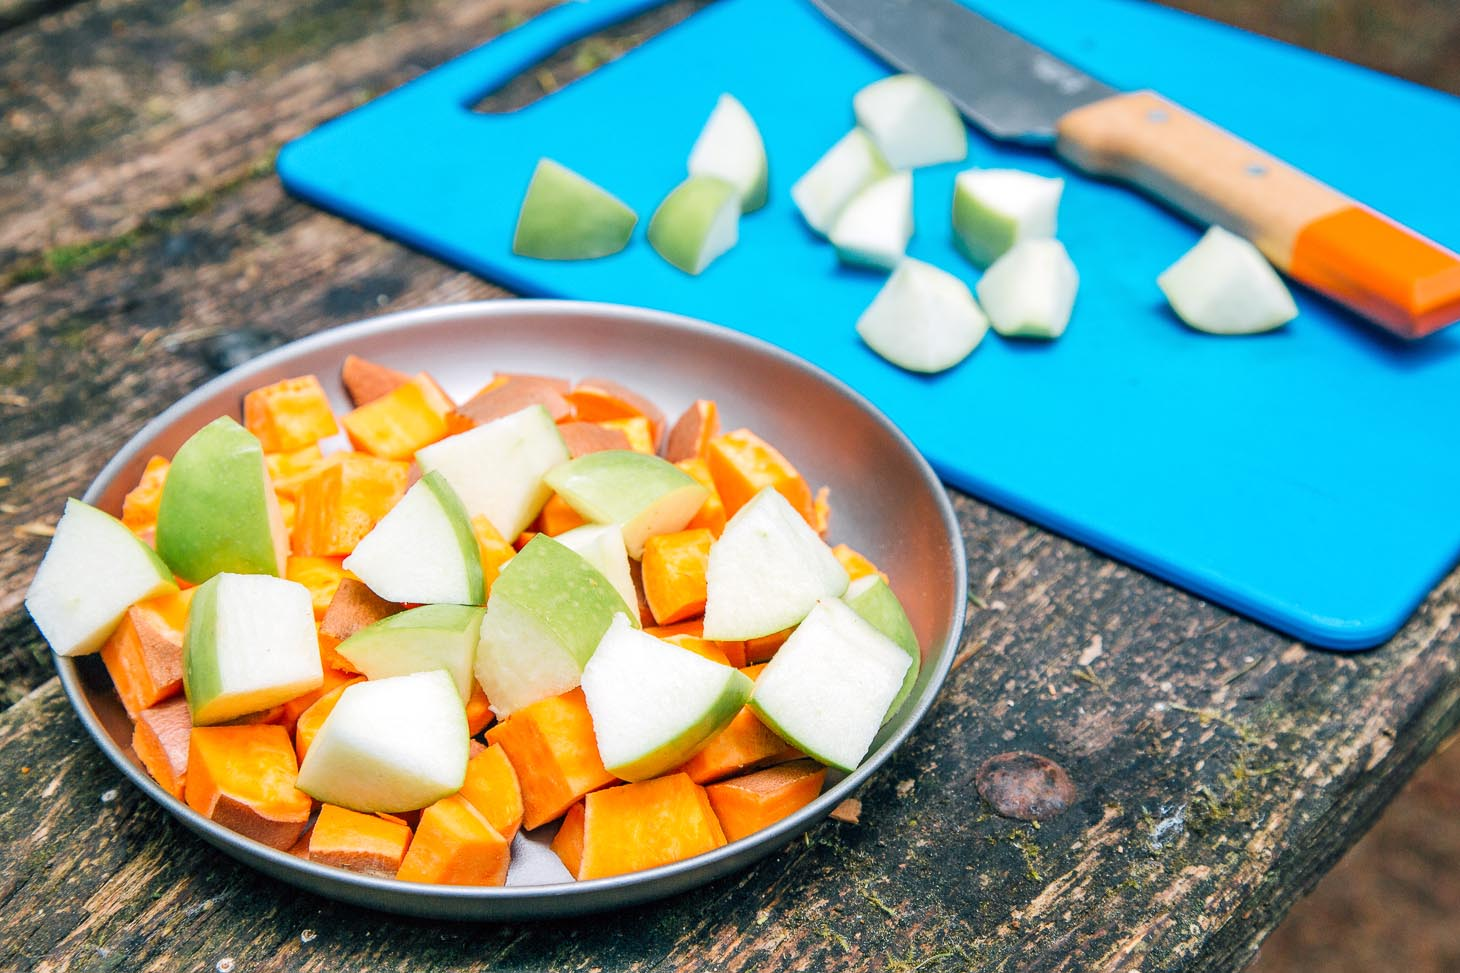 Chopped apples and sweet potatoes.